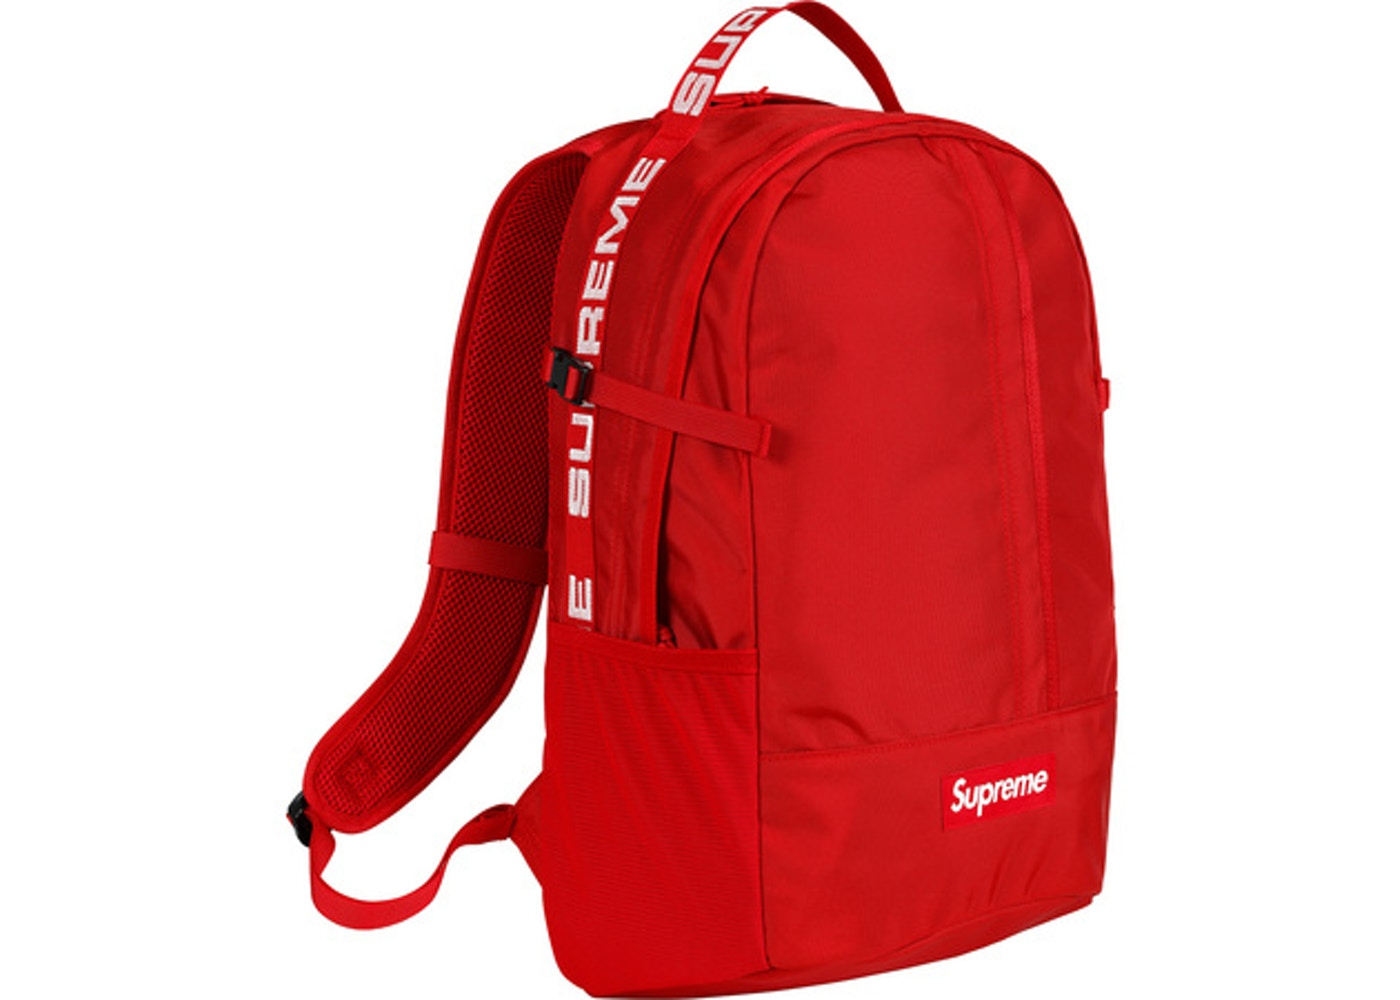 22933998802 Supreme-Backpack-SS18-Red.jpg?v=1534951229